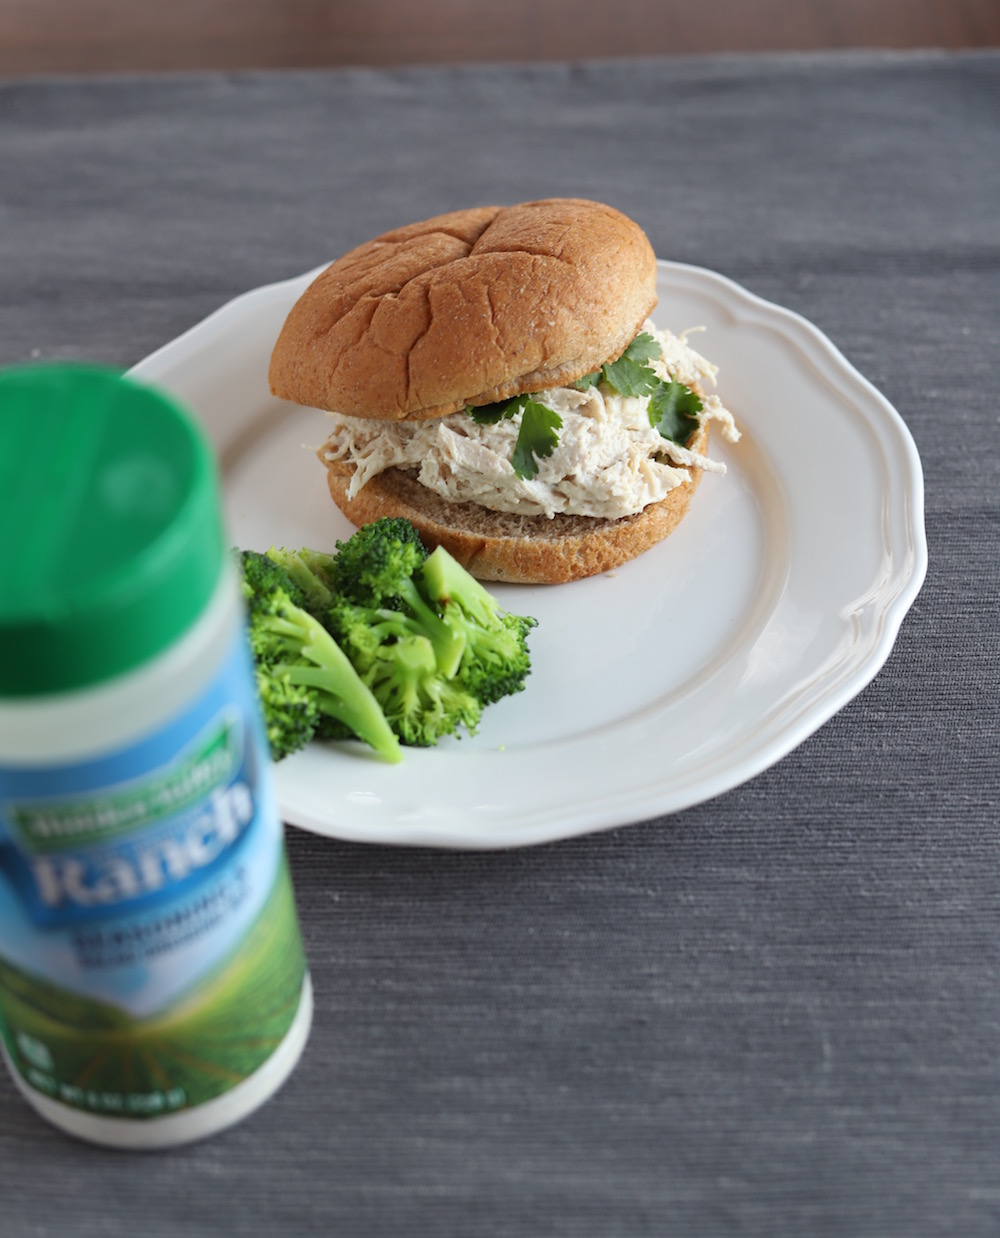 Dinner Made Easy with Hidden Valley Ranch - An easy weeknight recipe by Liz of lizrotz.com